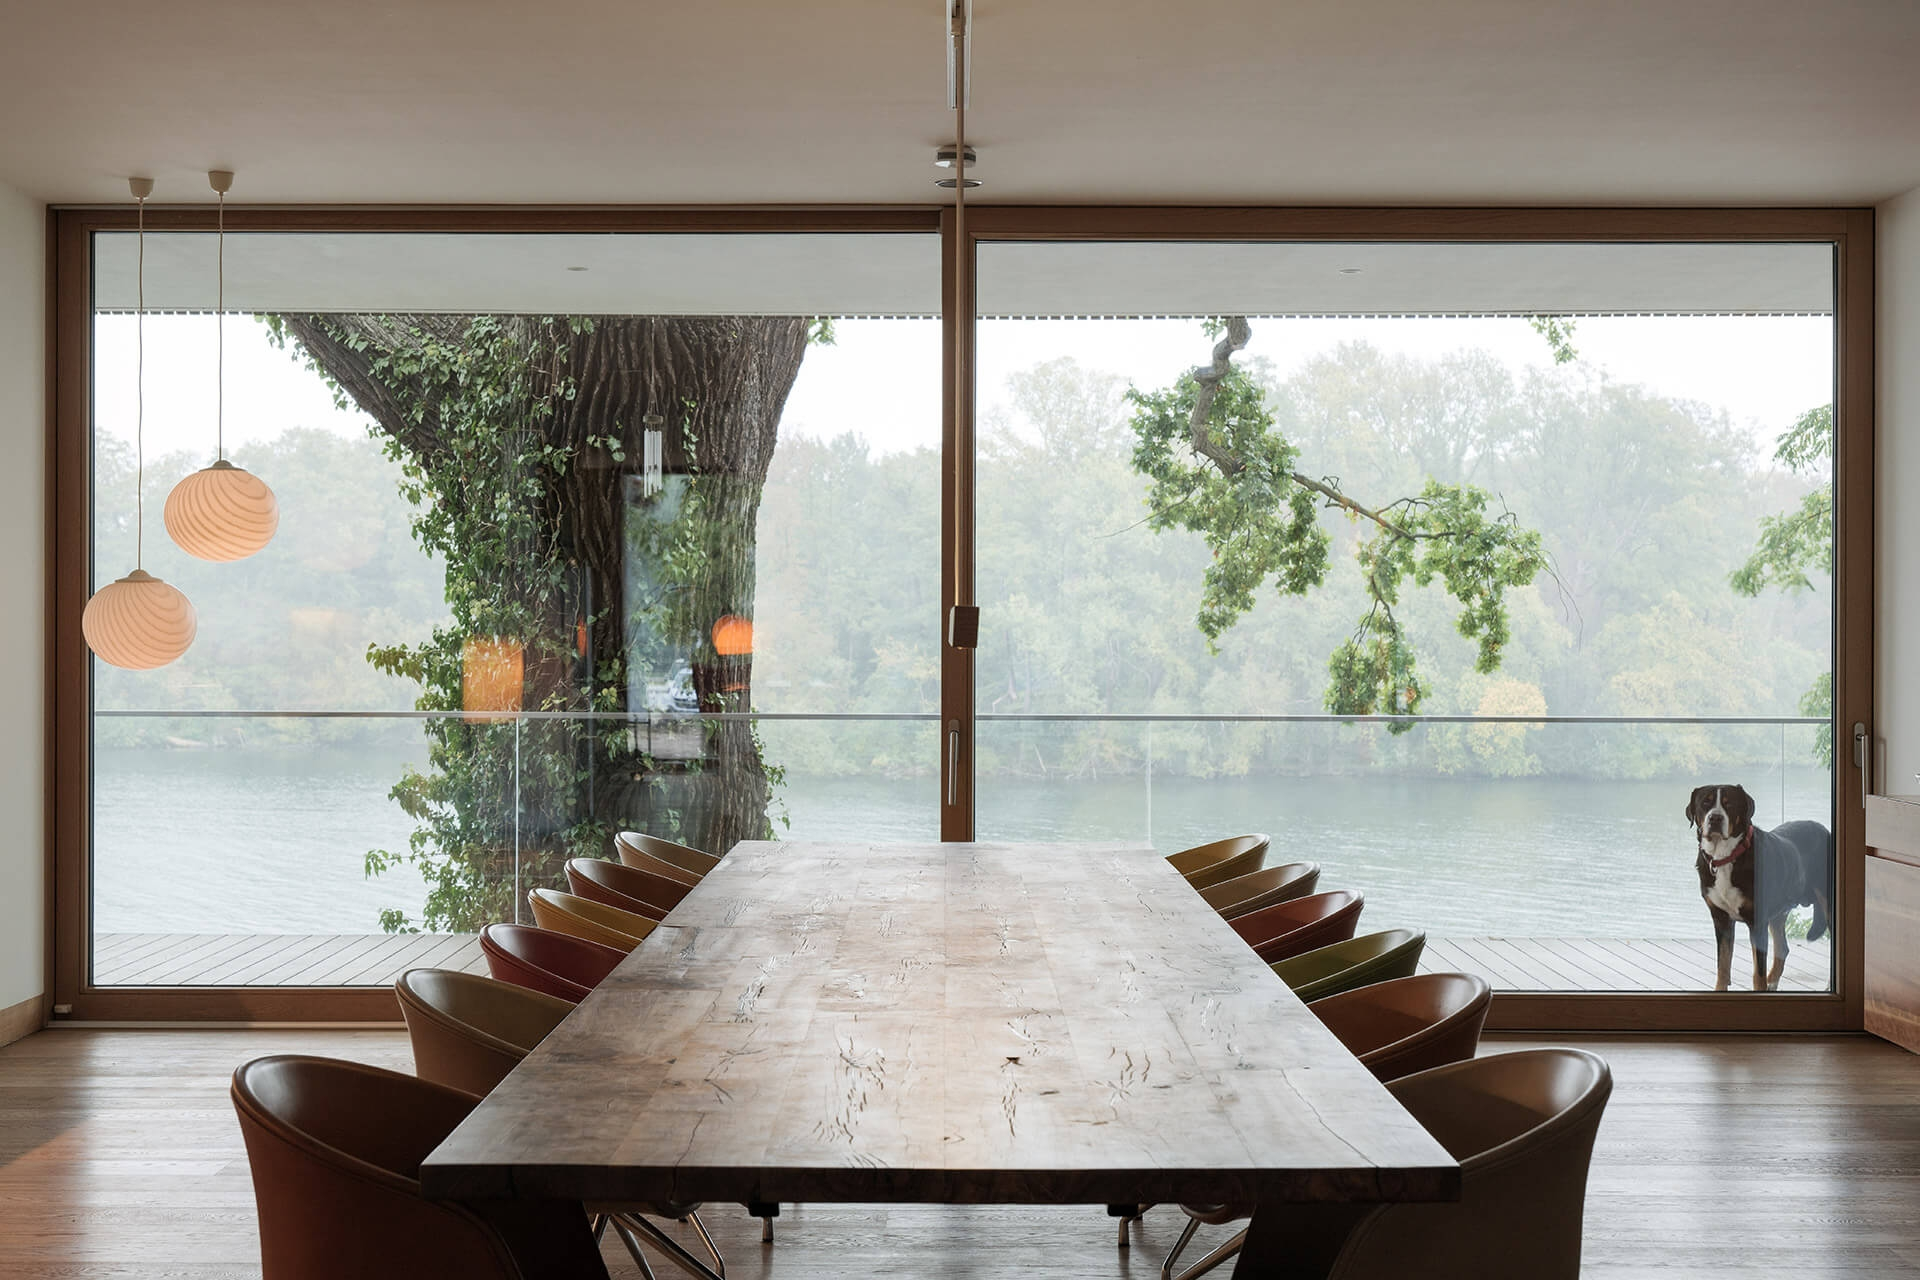 house by the lake 8